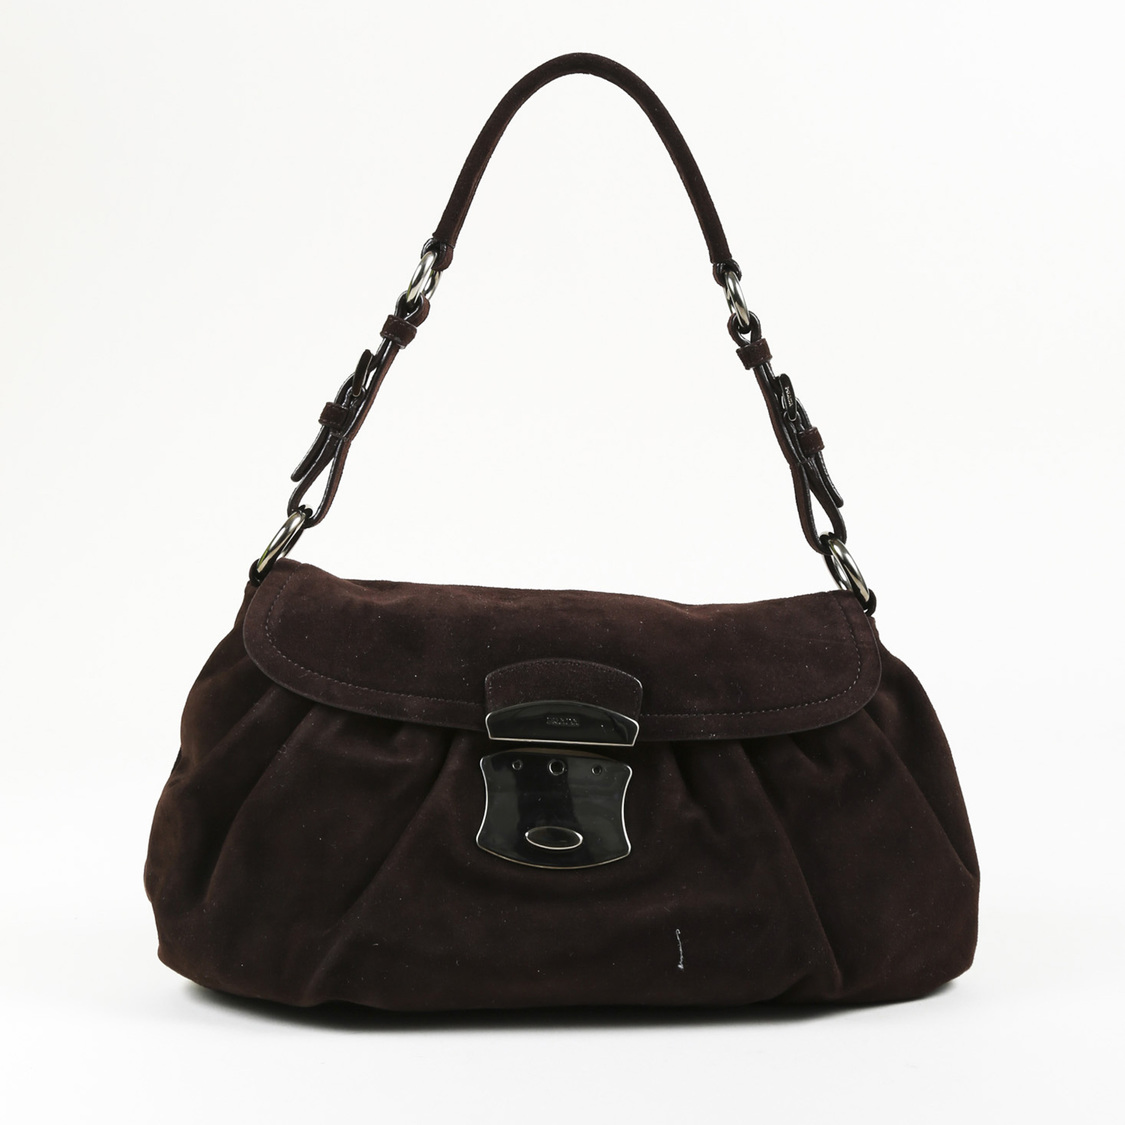 b17bce23dfc0 Details about Prada Dark Brown Suede Pleated Shoulder Bag